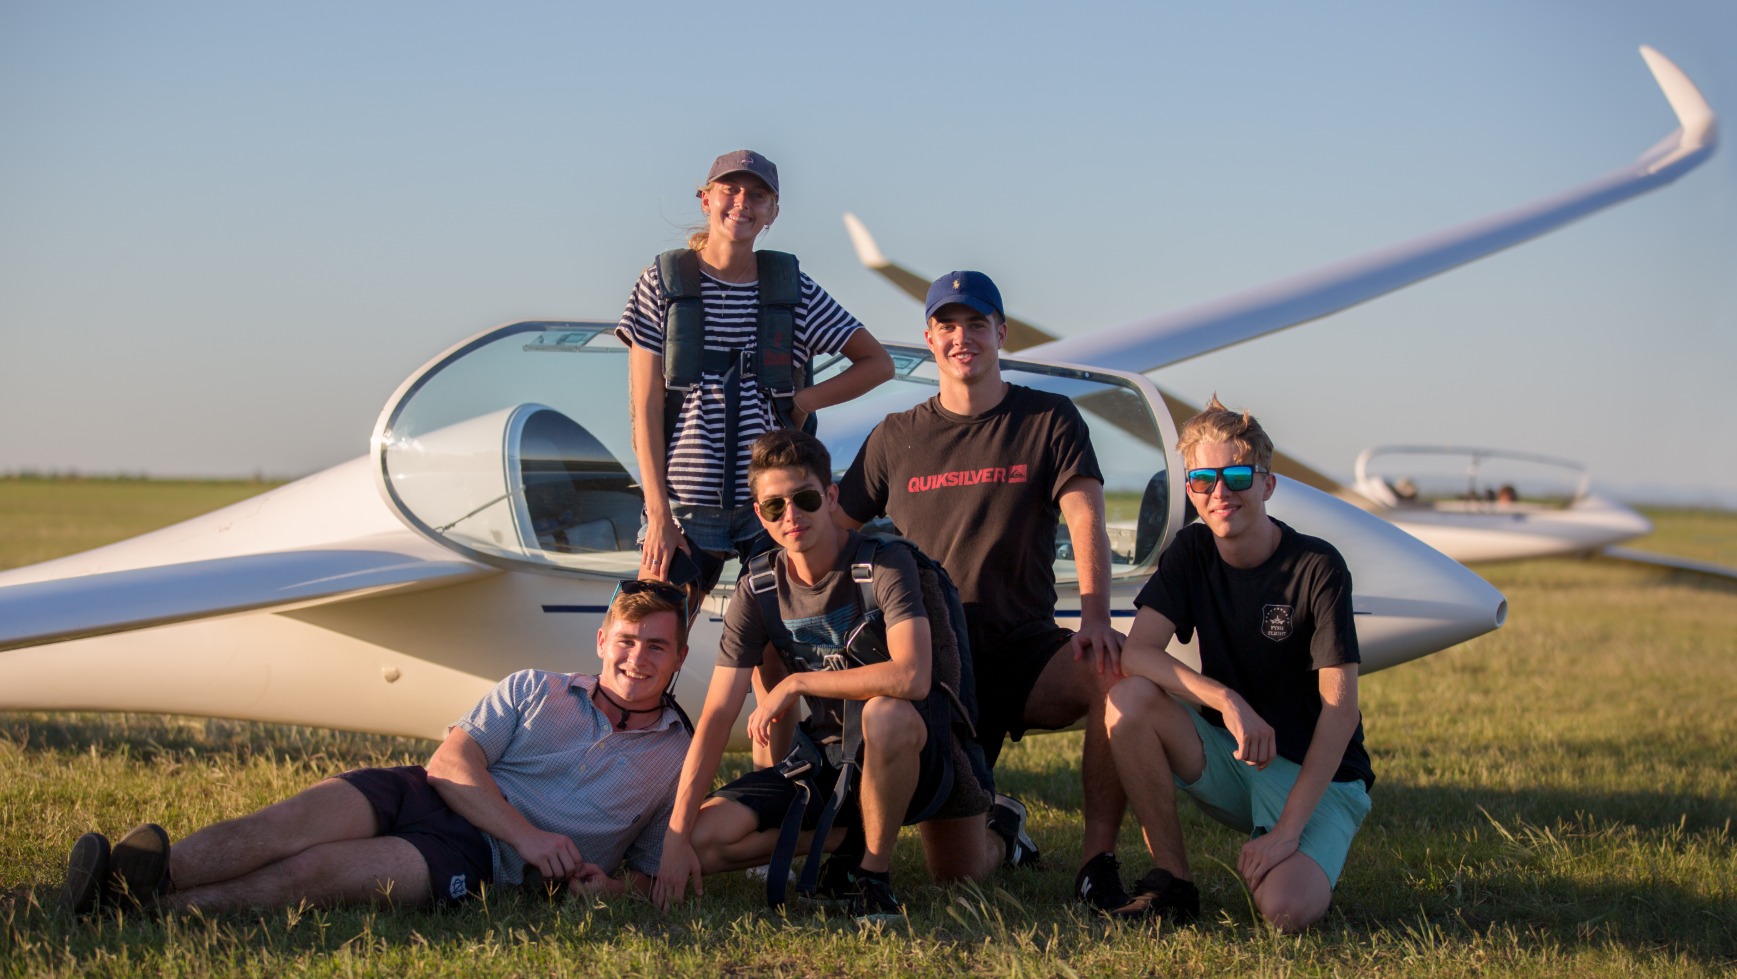 Darling Downs Soaring Club